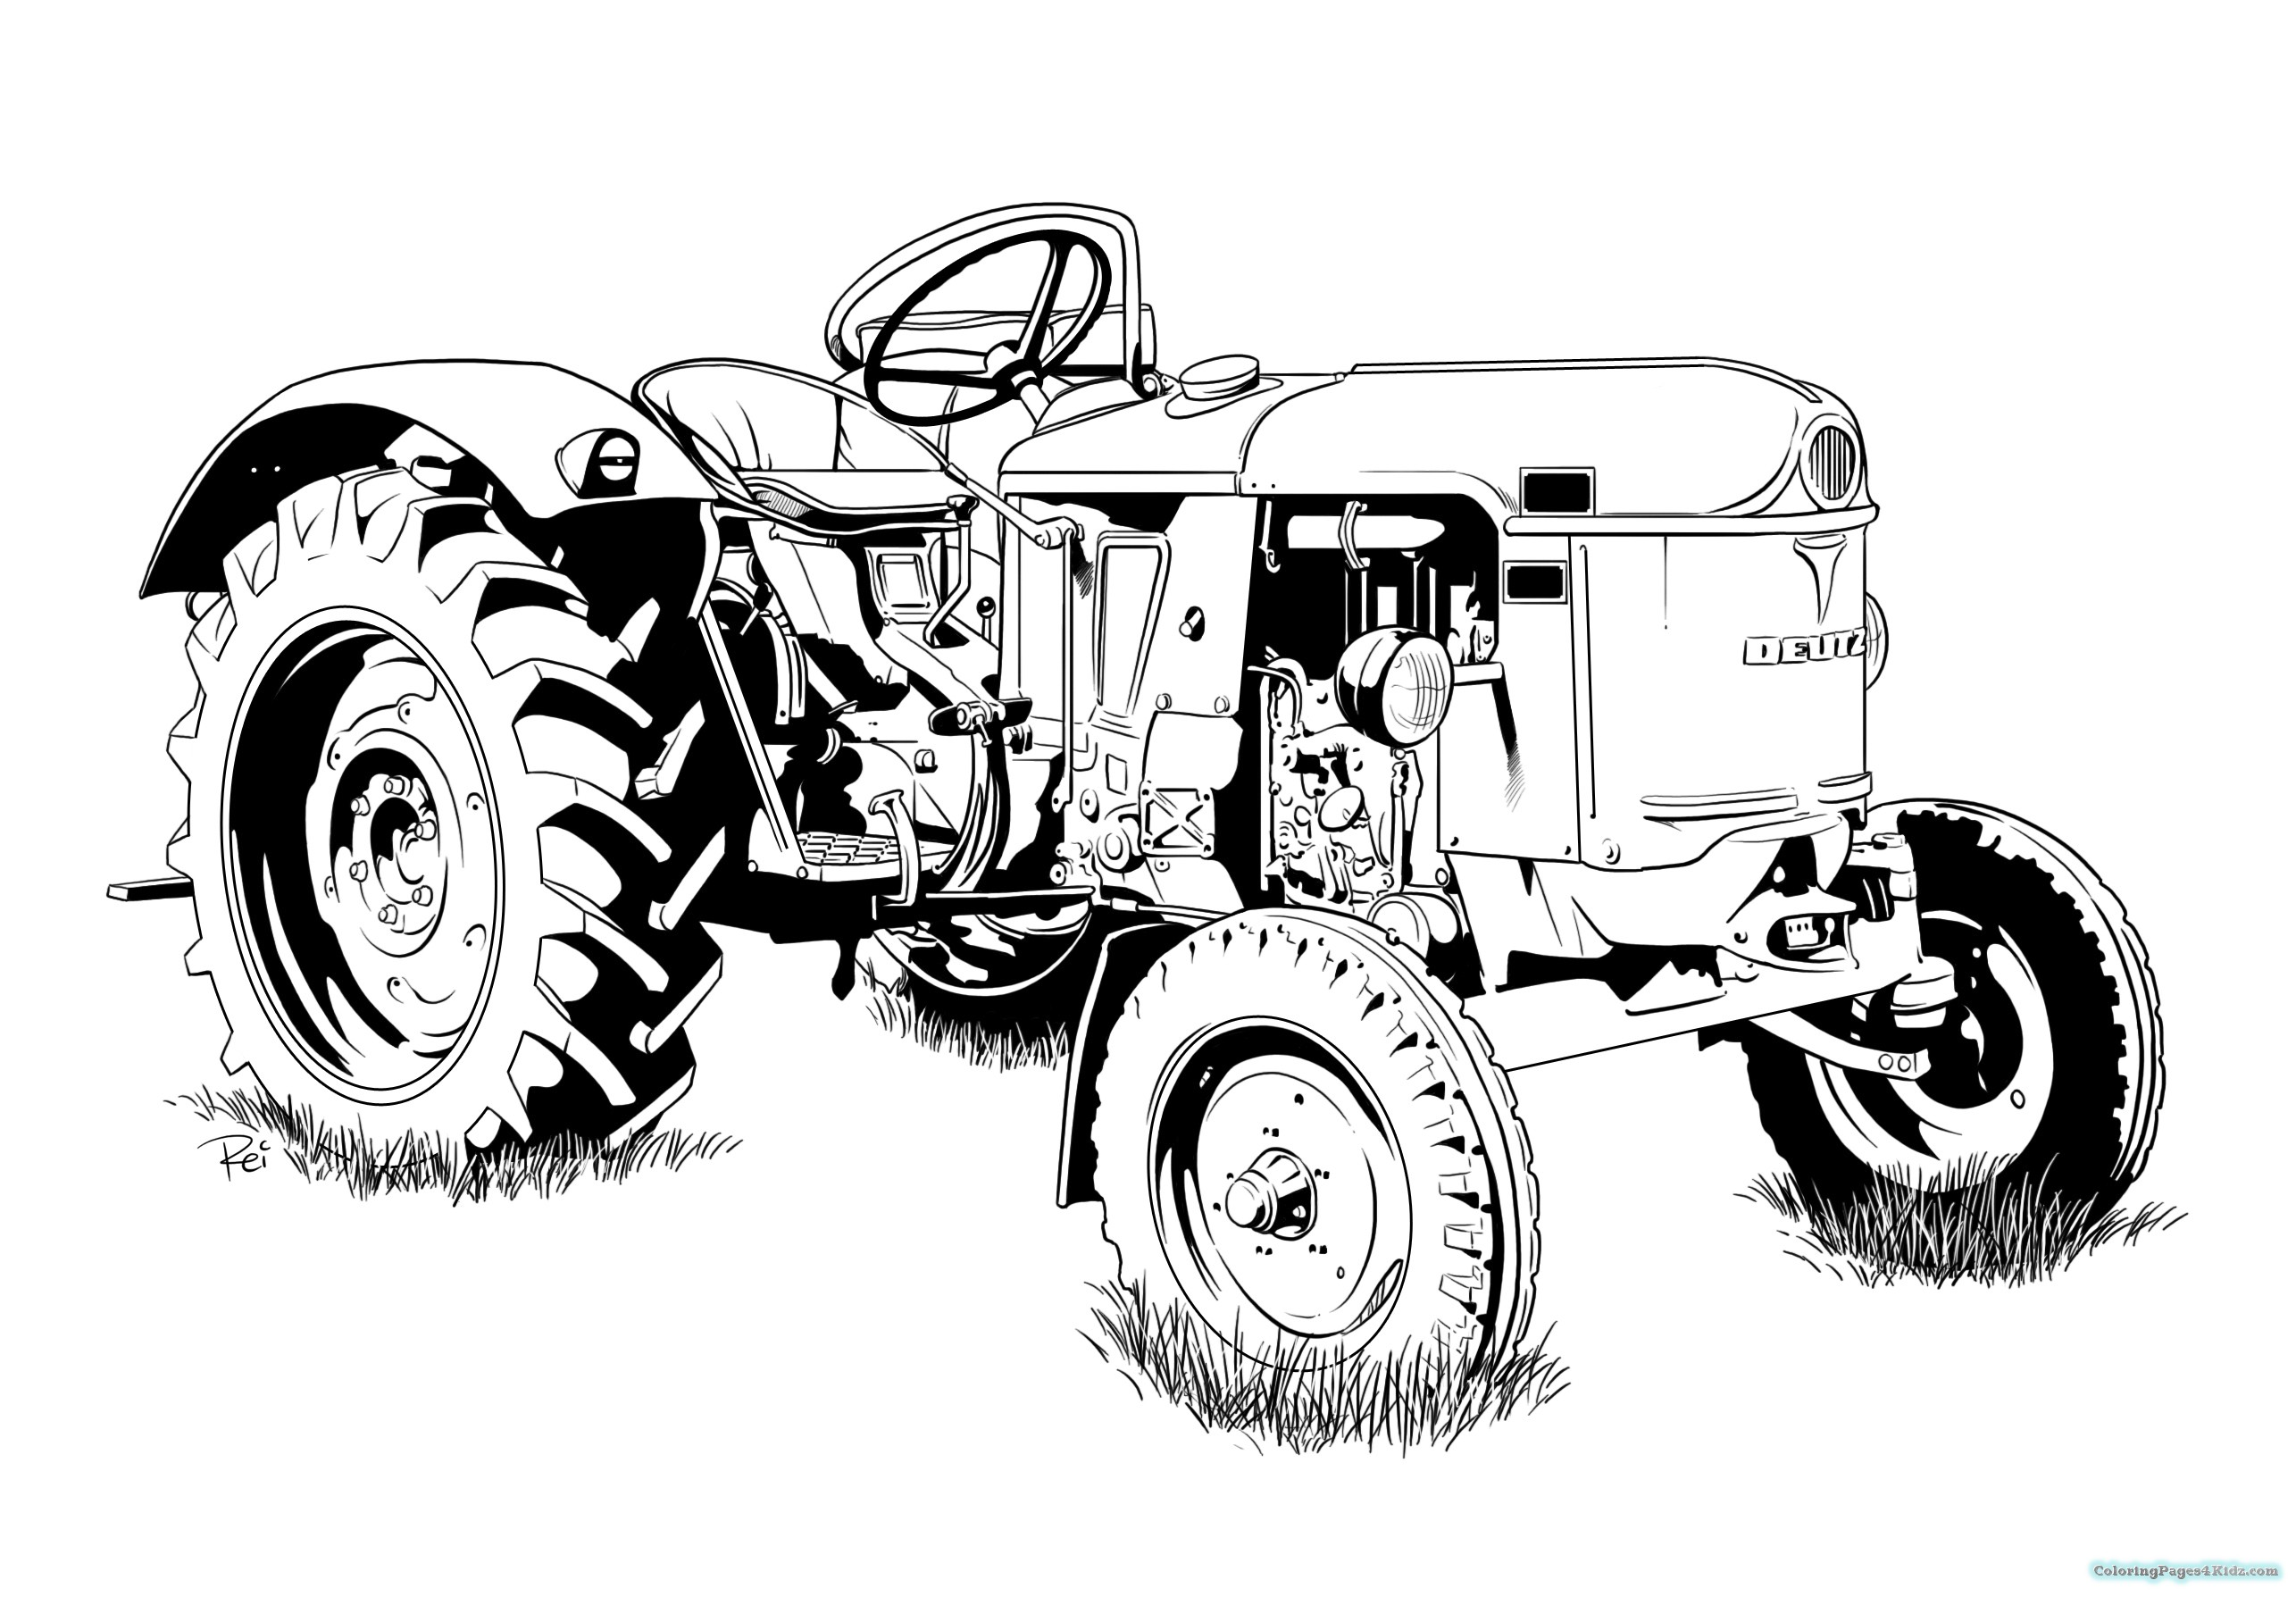 tractor coloring page tractor with a plow coloring pages coloring pages for kids page tractor coloring